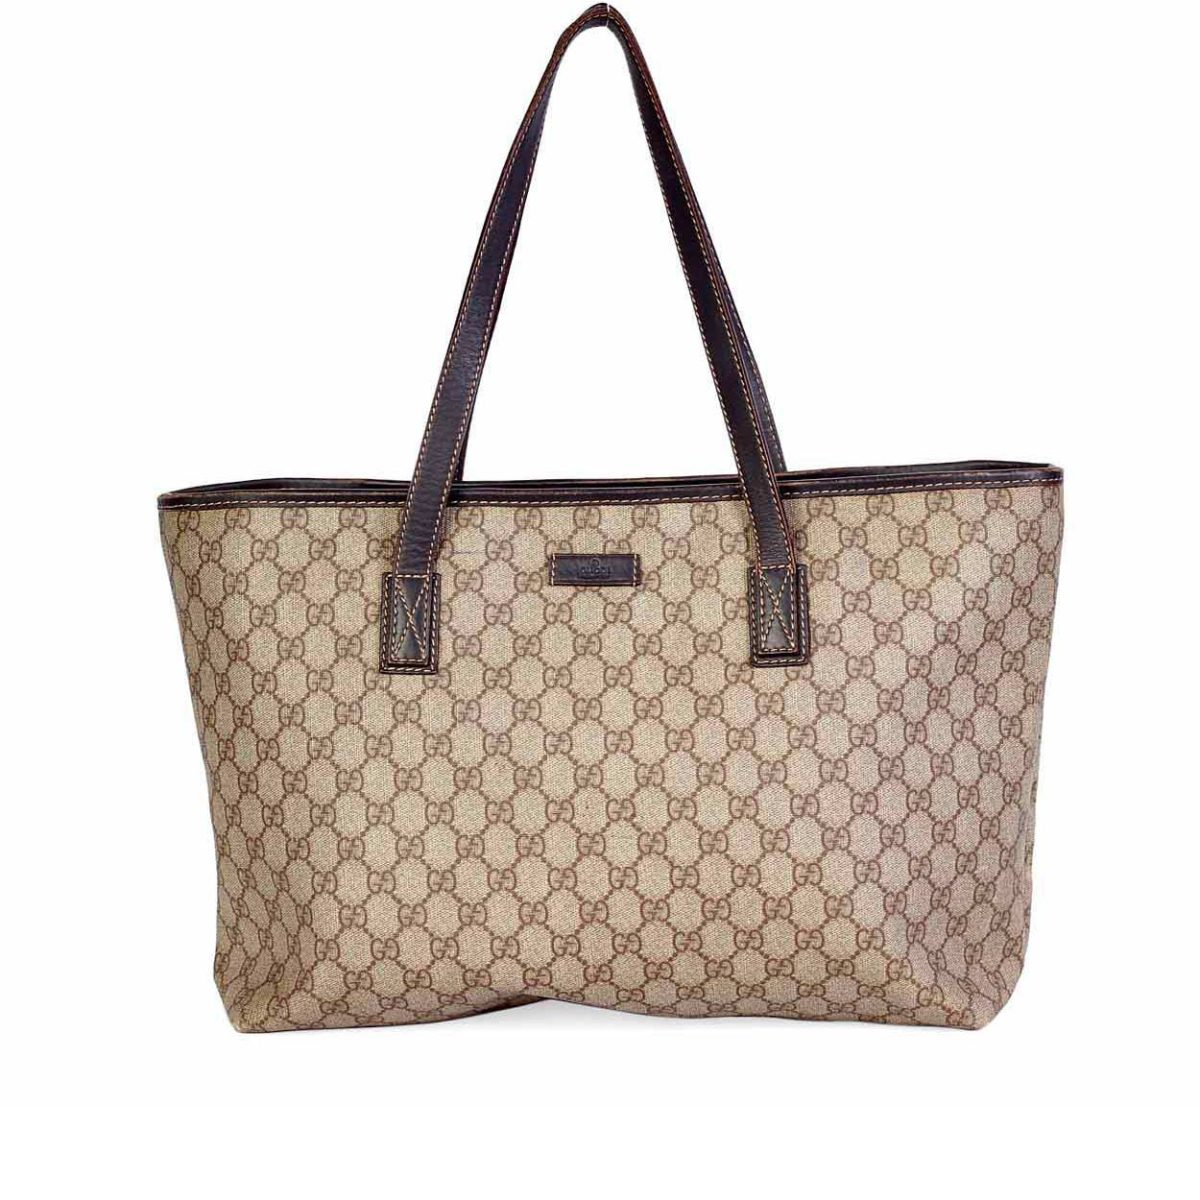 a42baecba1a9 GUCCI Monogram Top-Zip Tote Bag | Luxity